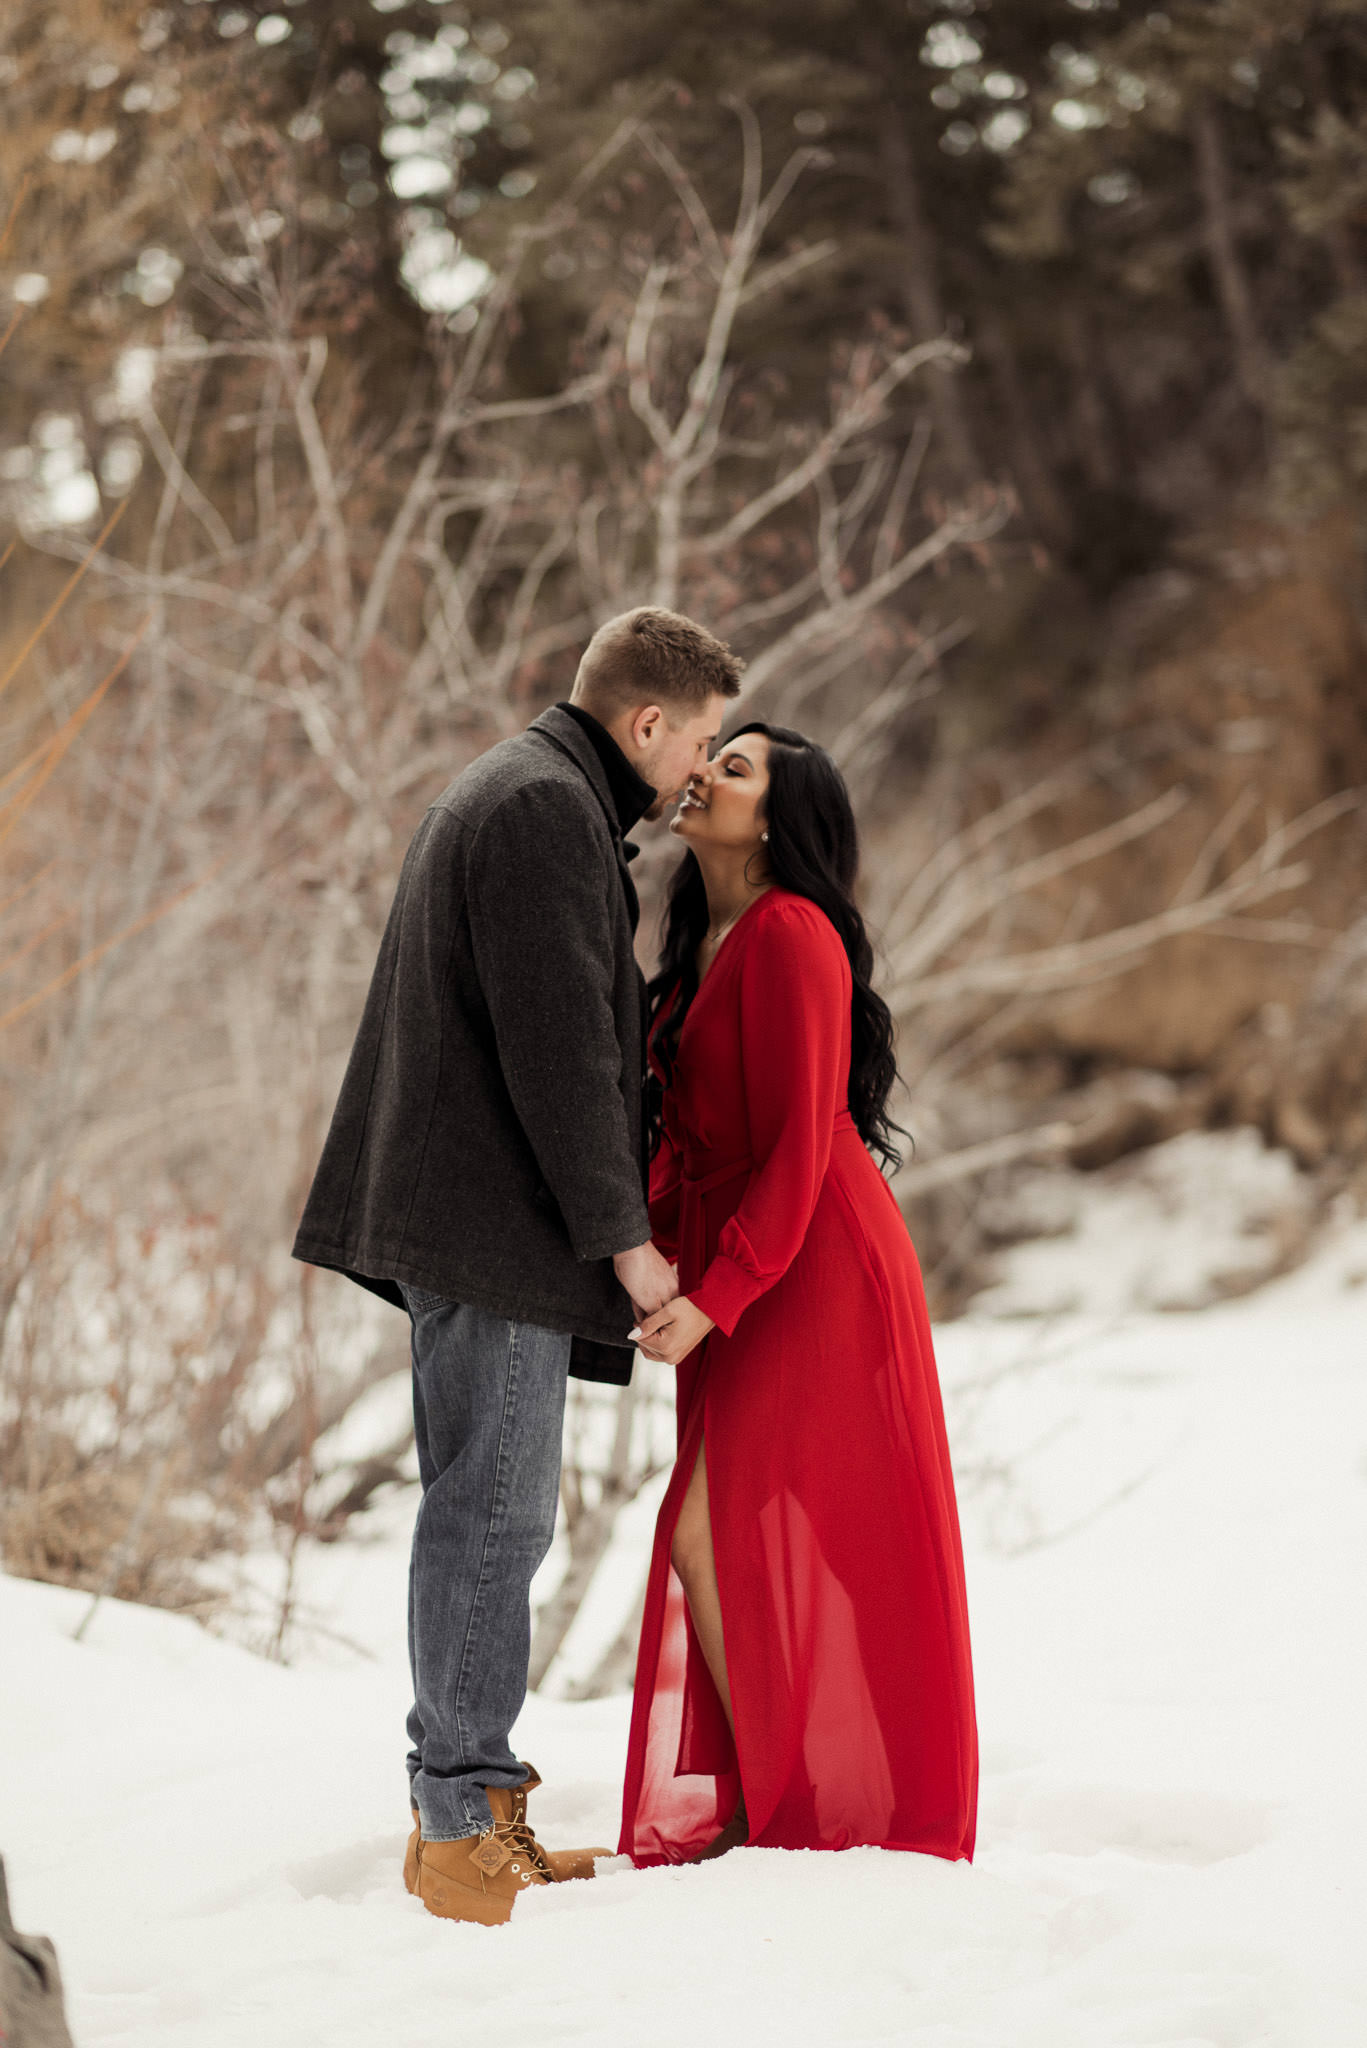 colorado-adventure-winter-snow-couples-engagement-photographer